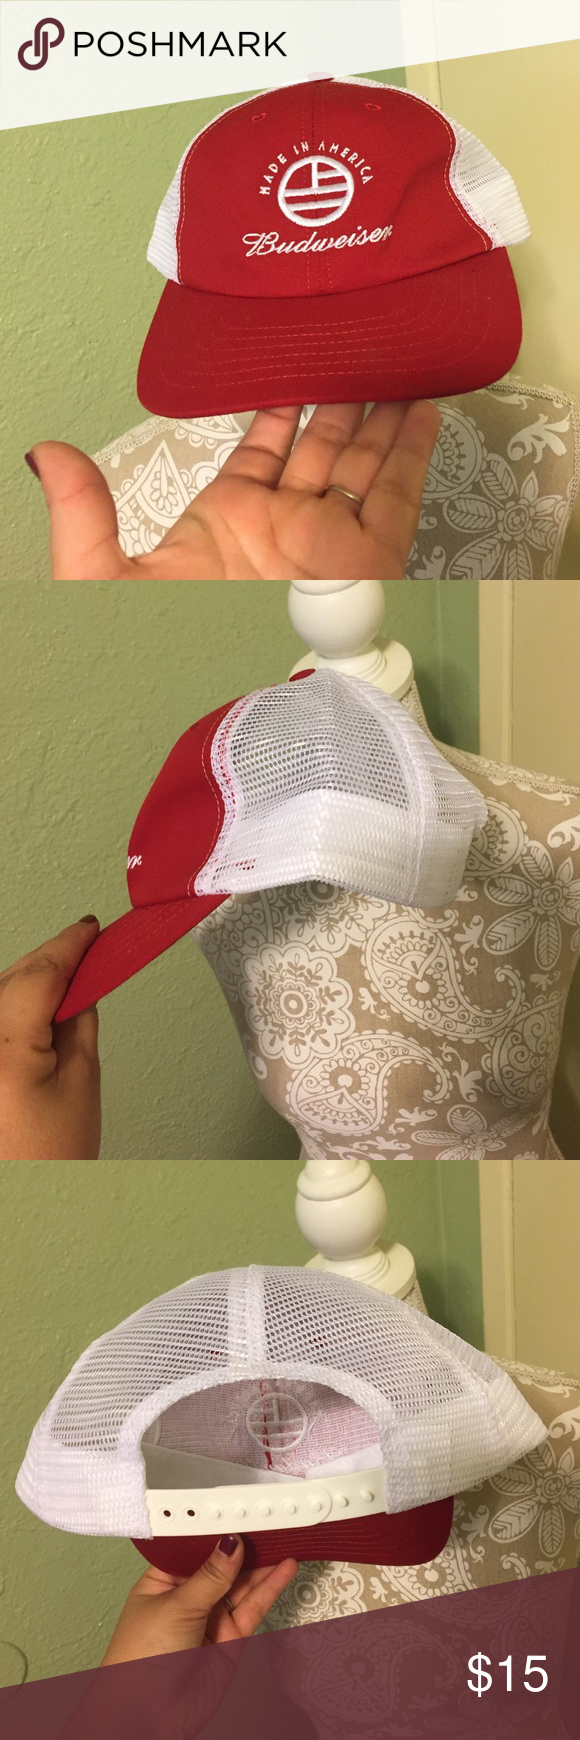 New Budweiser cap New Budweiser cap in red and white. Brand new never been worn just doesn't have tags. Great to wear to the river or during those hot summers. No trades. Budweiser Accessories Hats